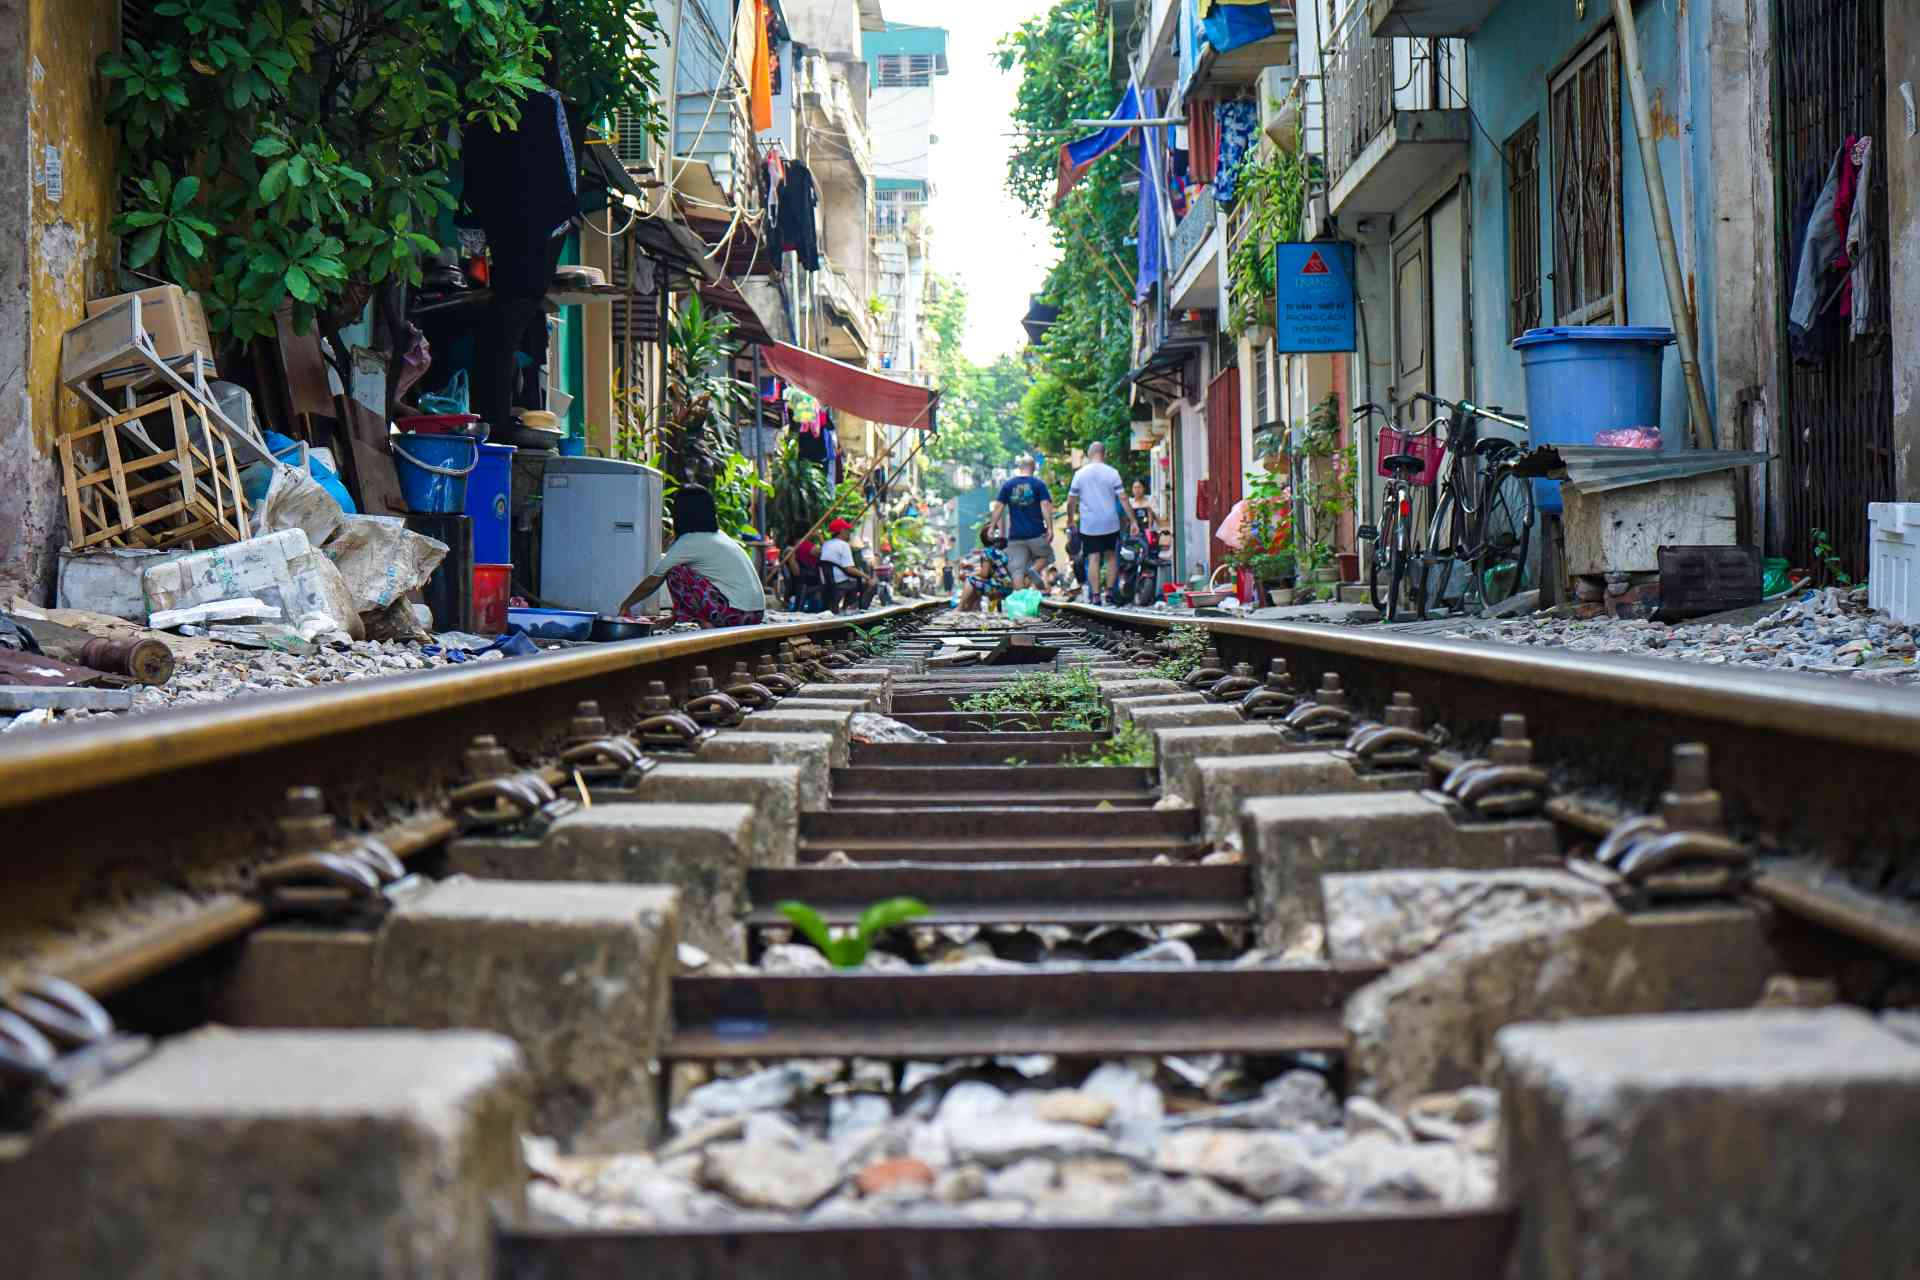 Rail Tracks of Hanoi, Vietnam by Priscilla Aster